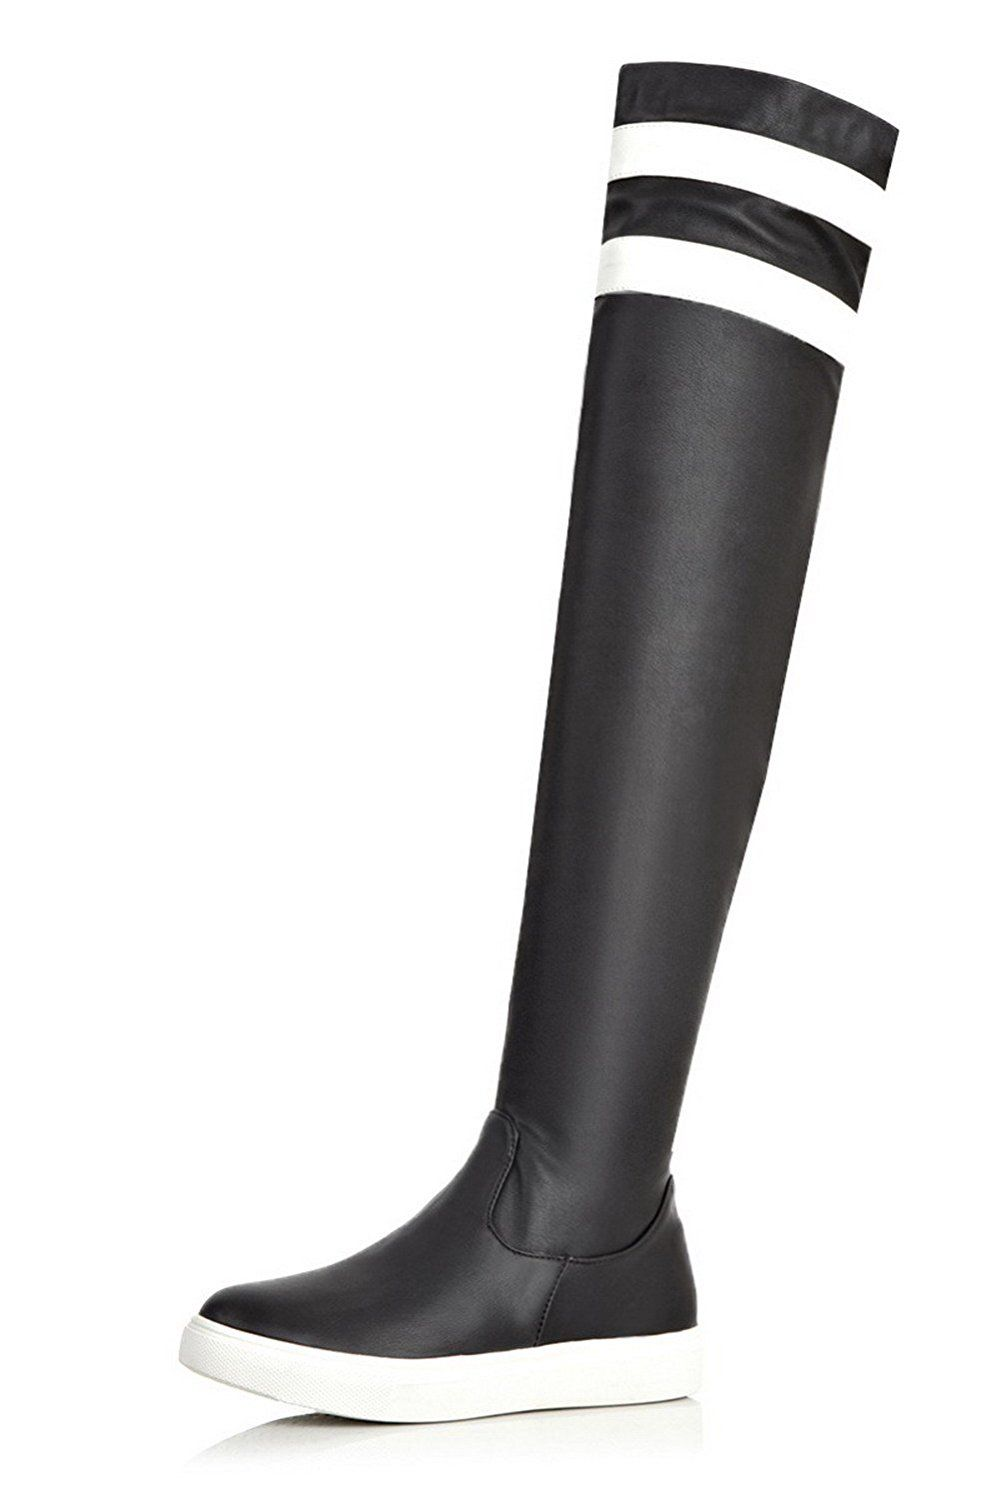 Women's Round Closed Toe PU Zipper High-heels Above-the-knee Boots